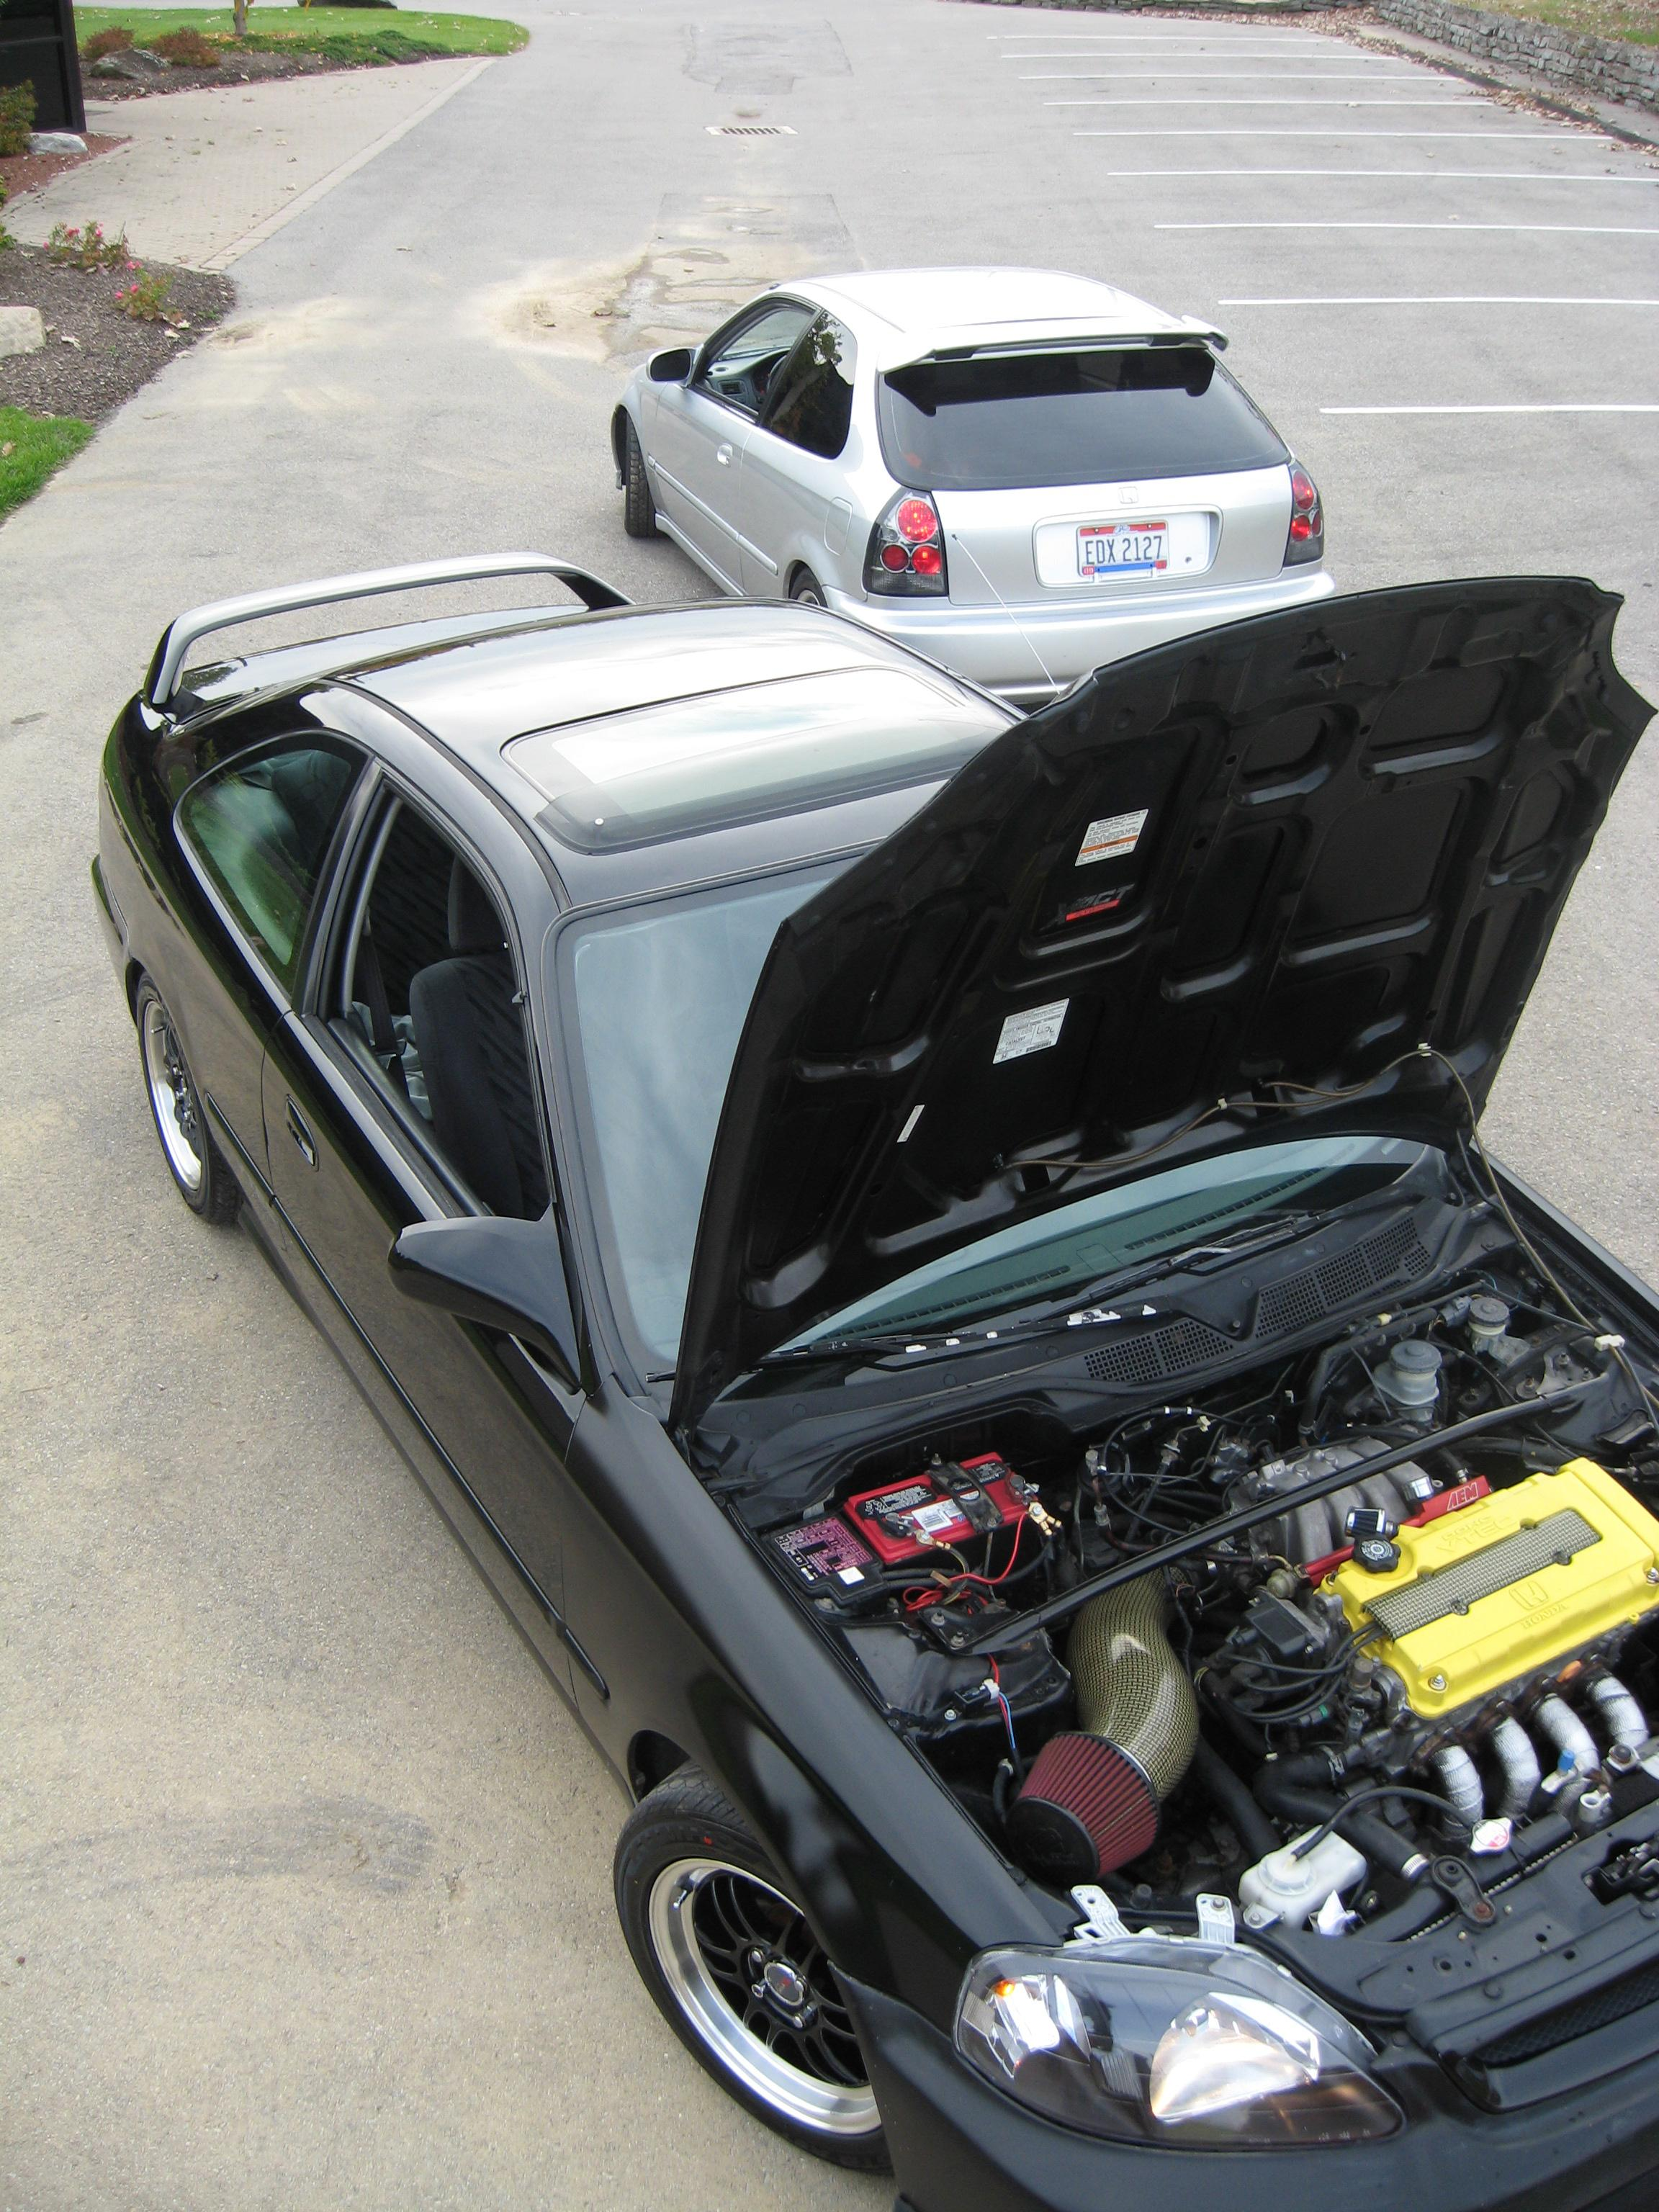 Zero-Boost's 1999 Honda Civic